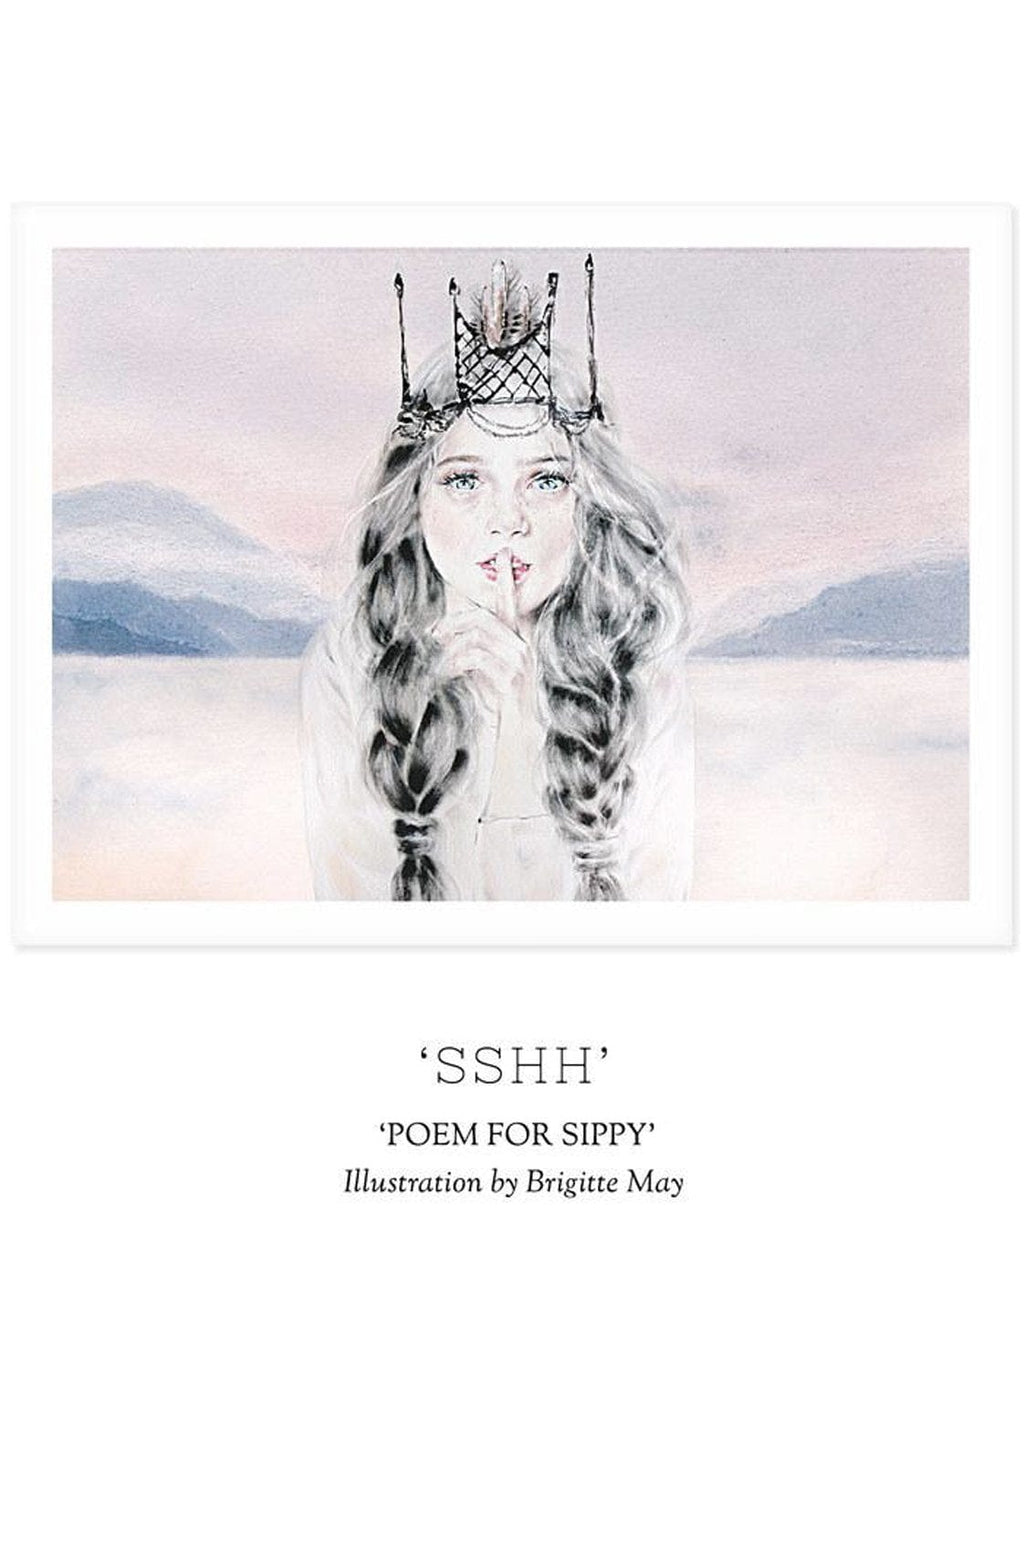 POEM FOR SIPPY - 'SSHH' Print